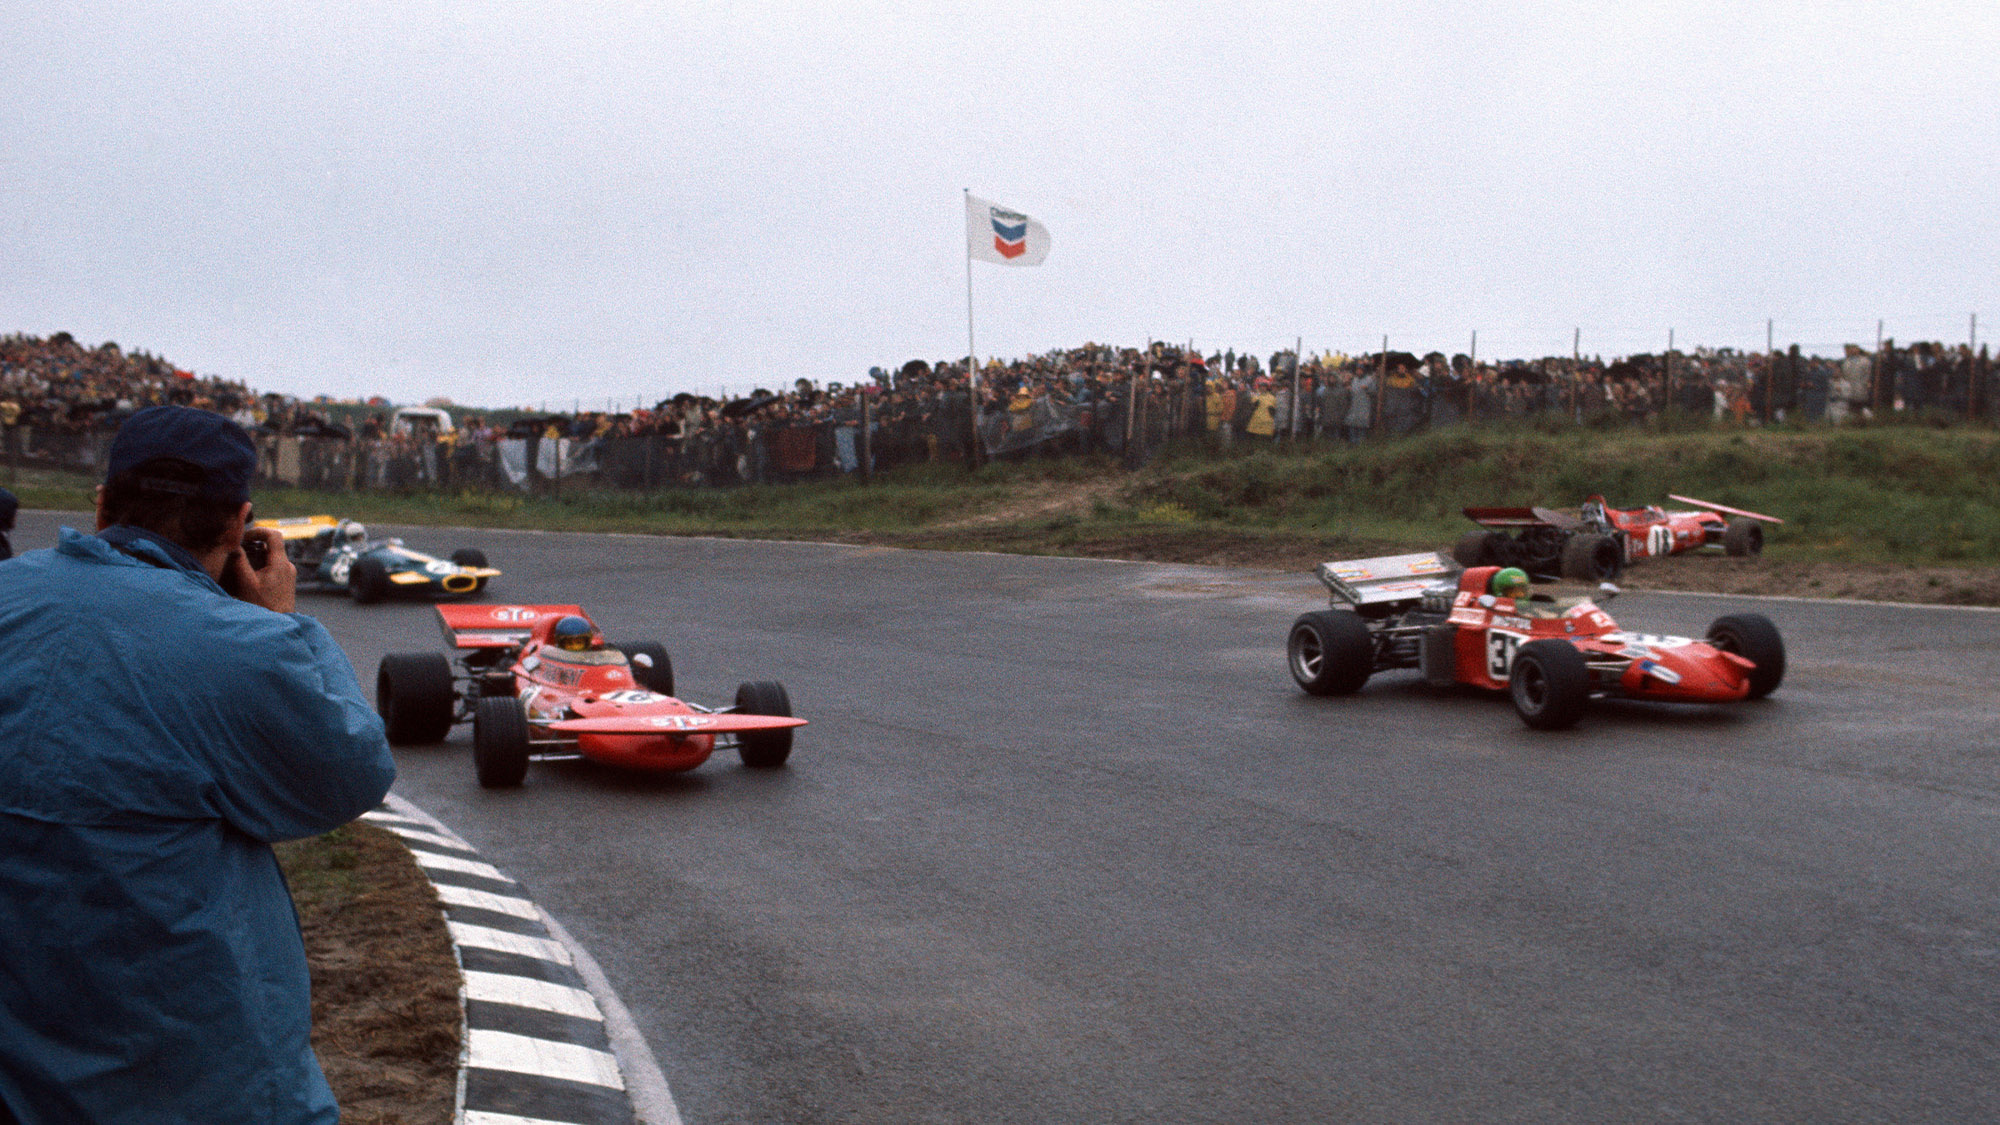 Pescarolo, Peterson and Schenken pass the crashed car of Nanni Galli at the 1971 Dutch GP